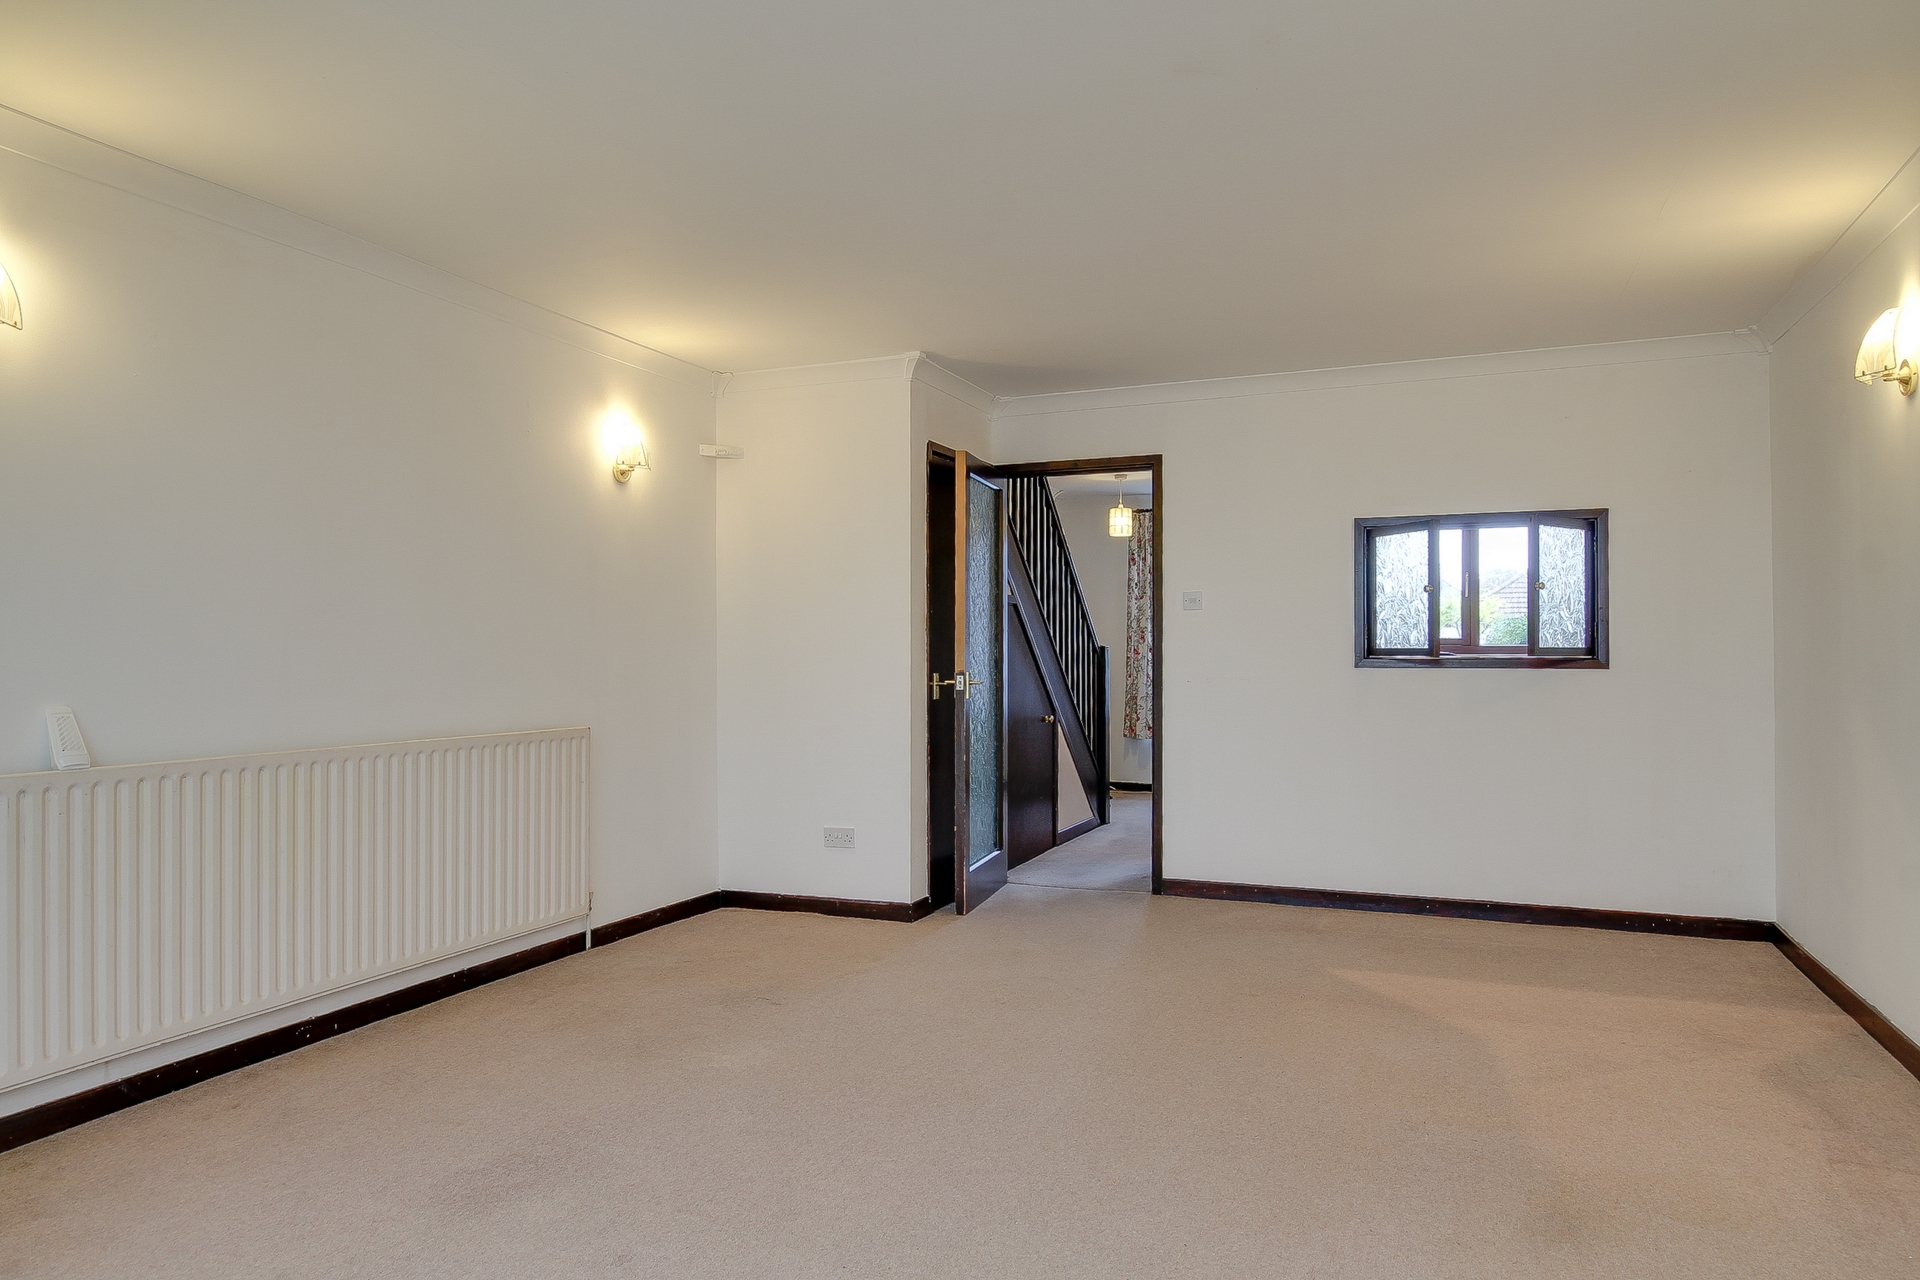 3 bed house to rent in Beach Avenue, Birchington  - Property Image 3